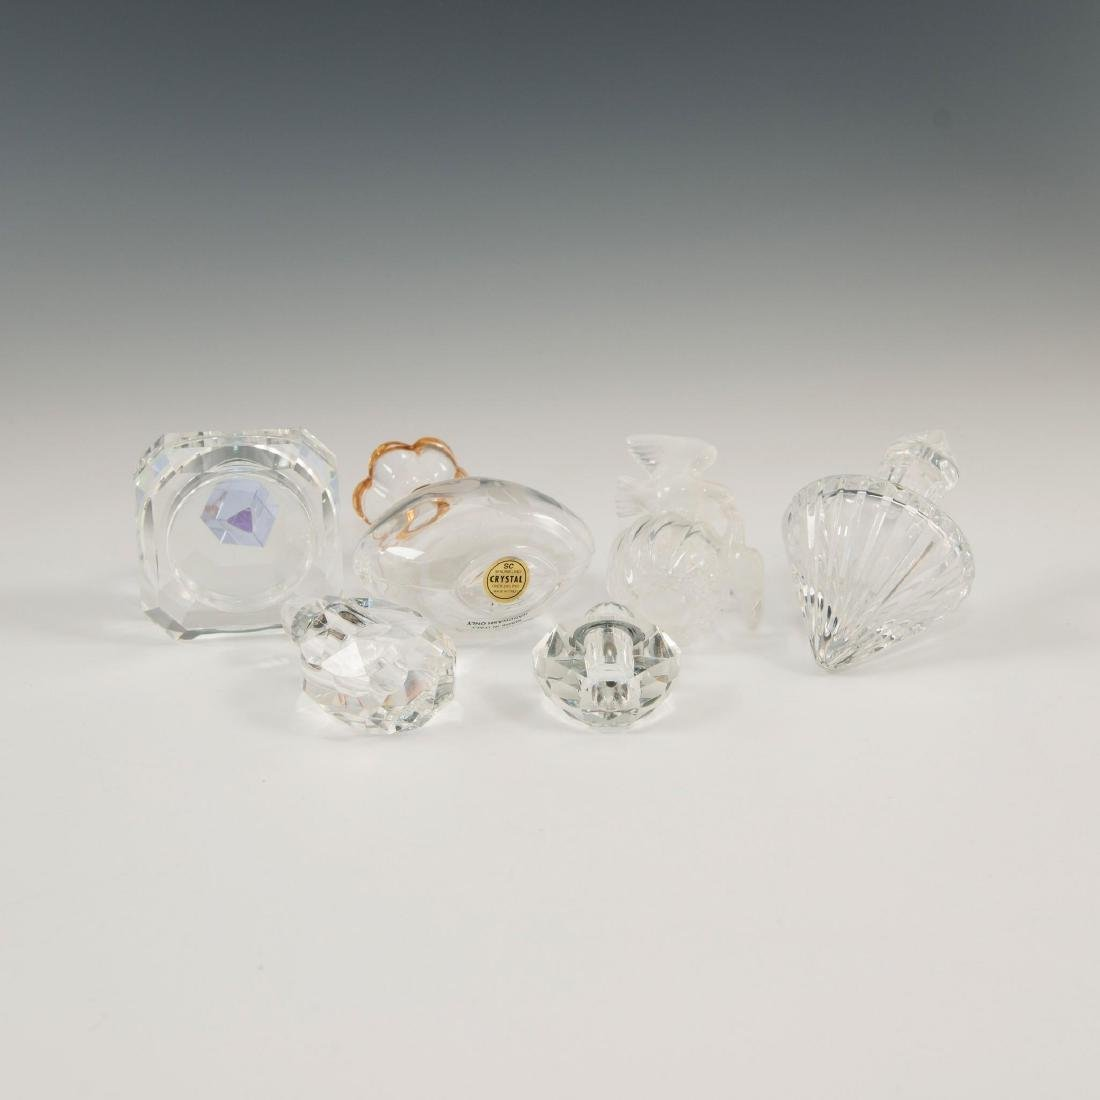 GROUP OF 12 CRYSTAL ART GLASS PERFUME BOTTLES LALIQUE - 9